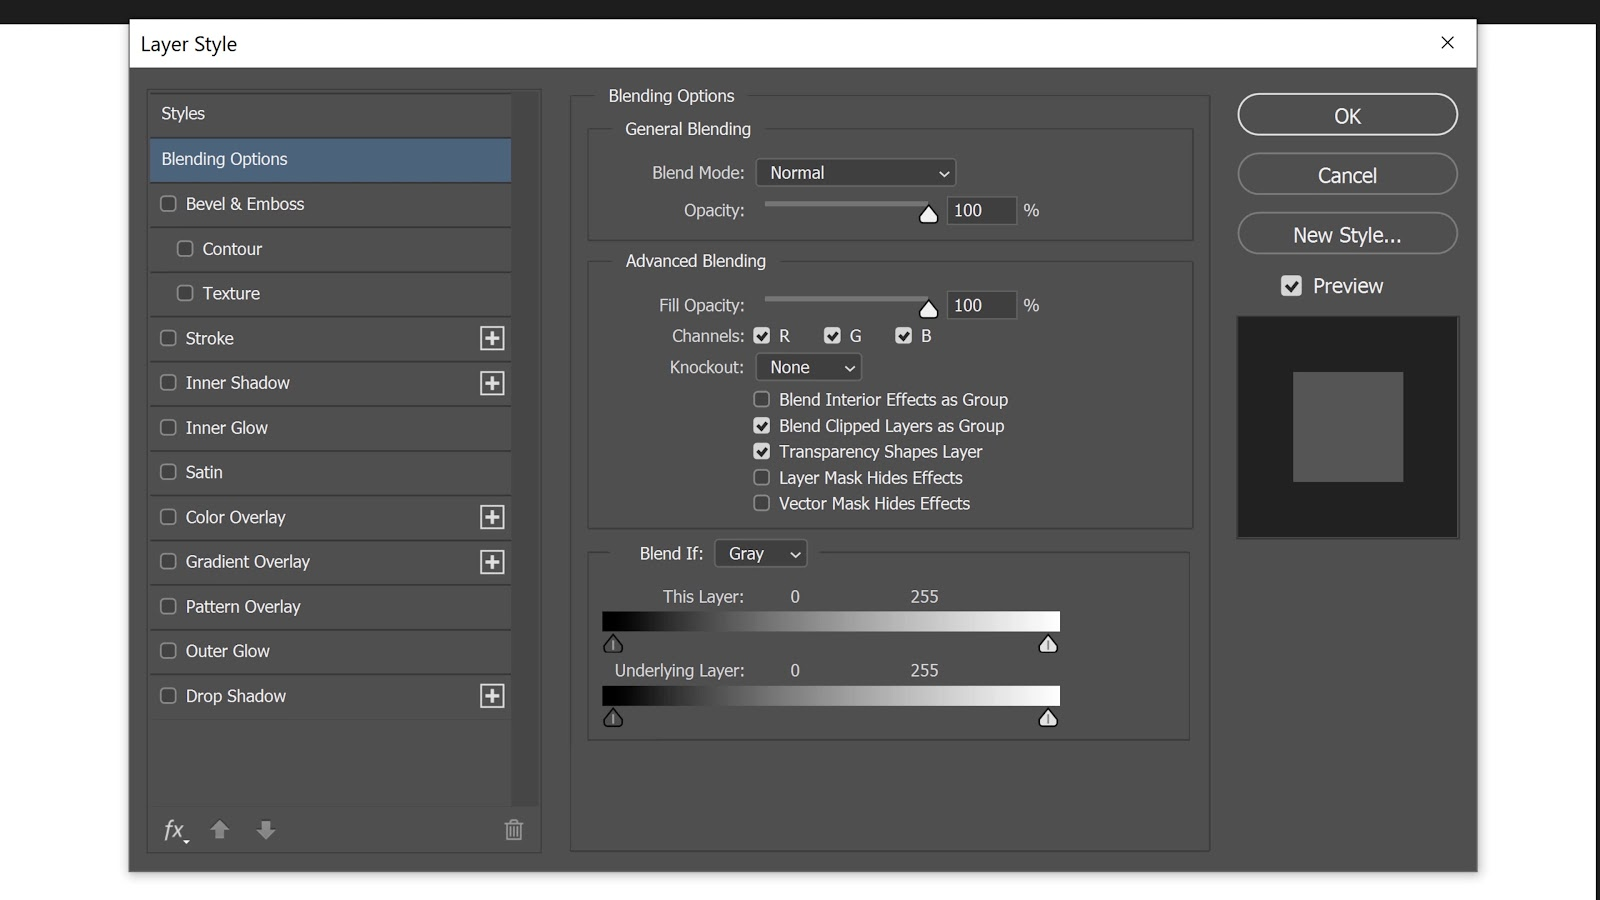 Double-click on the side of the layer to bring up the Layer Style window